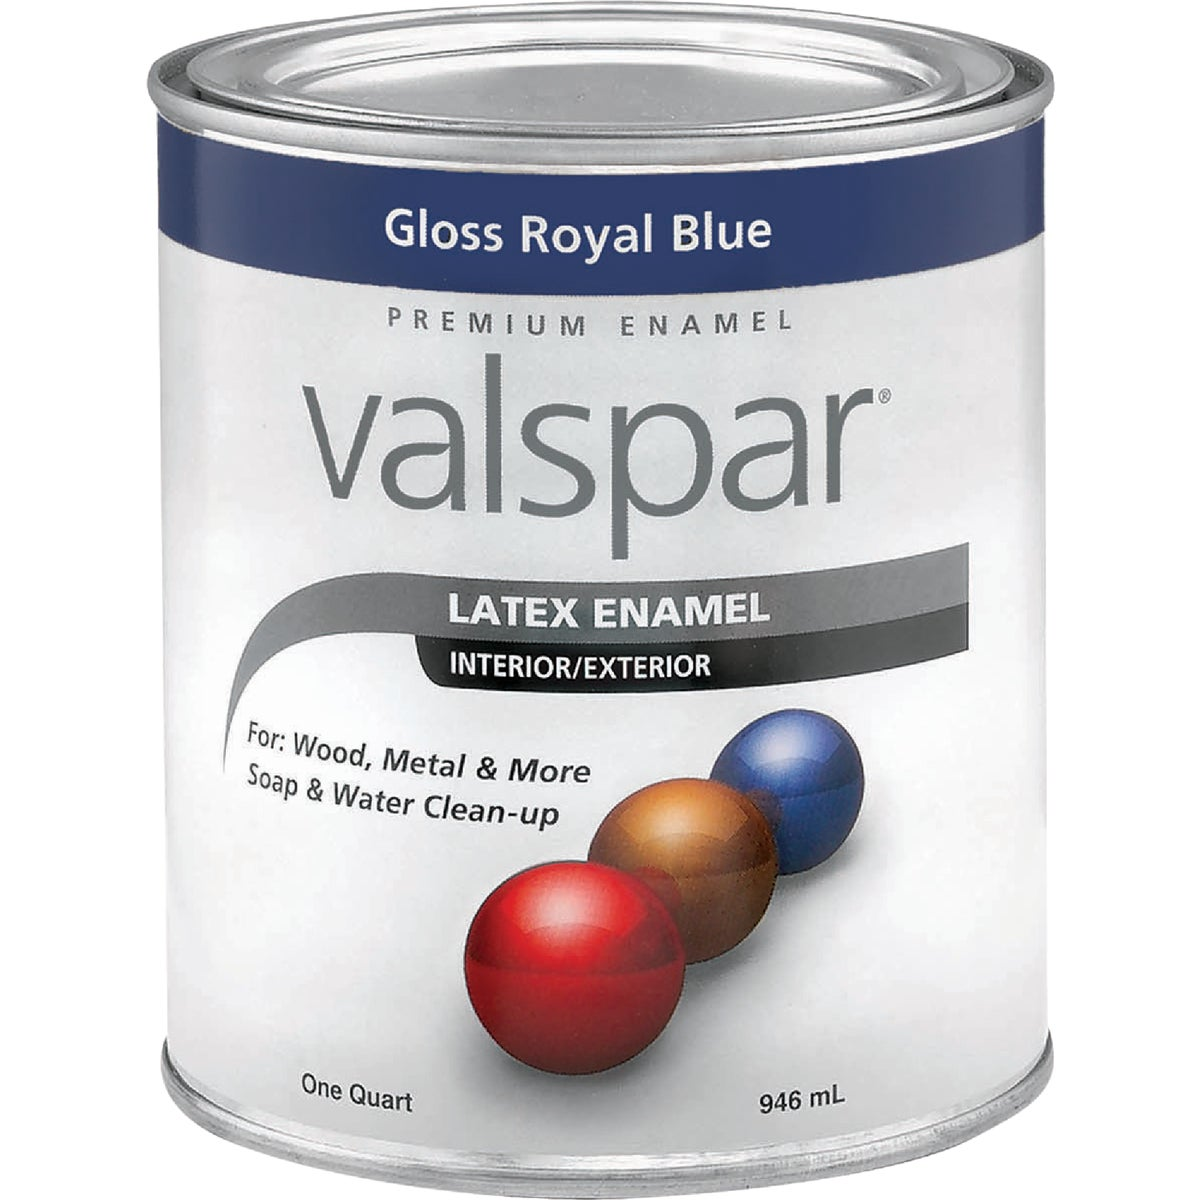 LTX DARK BLUE ENAMEL - 410.0065031.005 by Valspar Corp